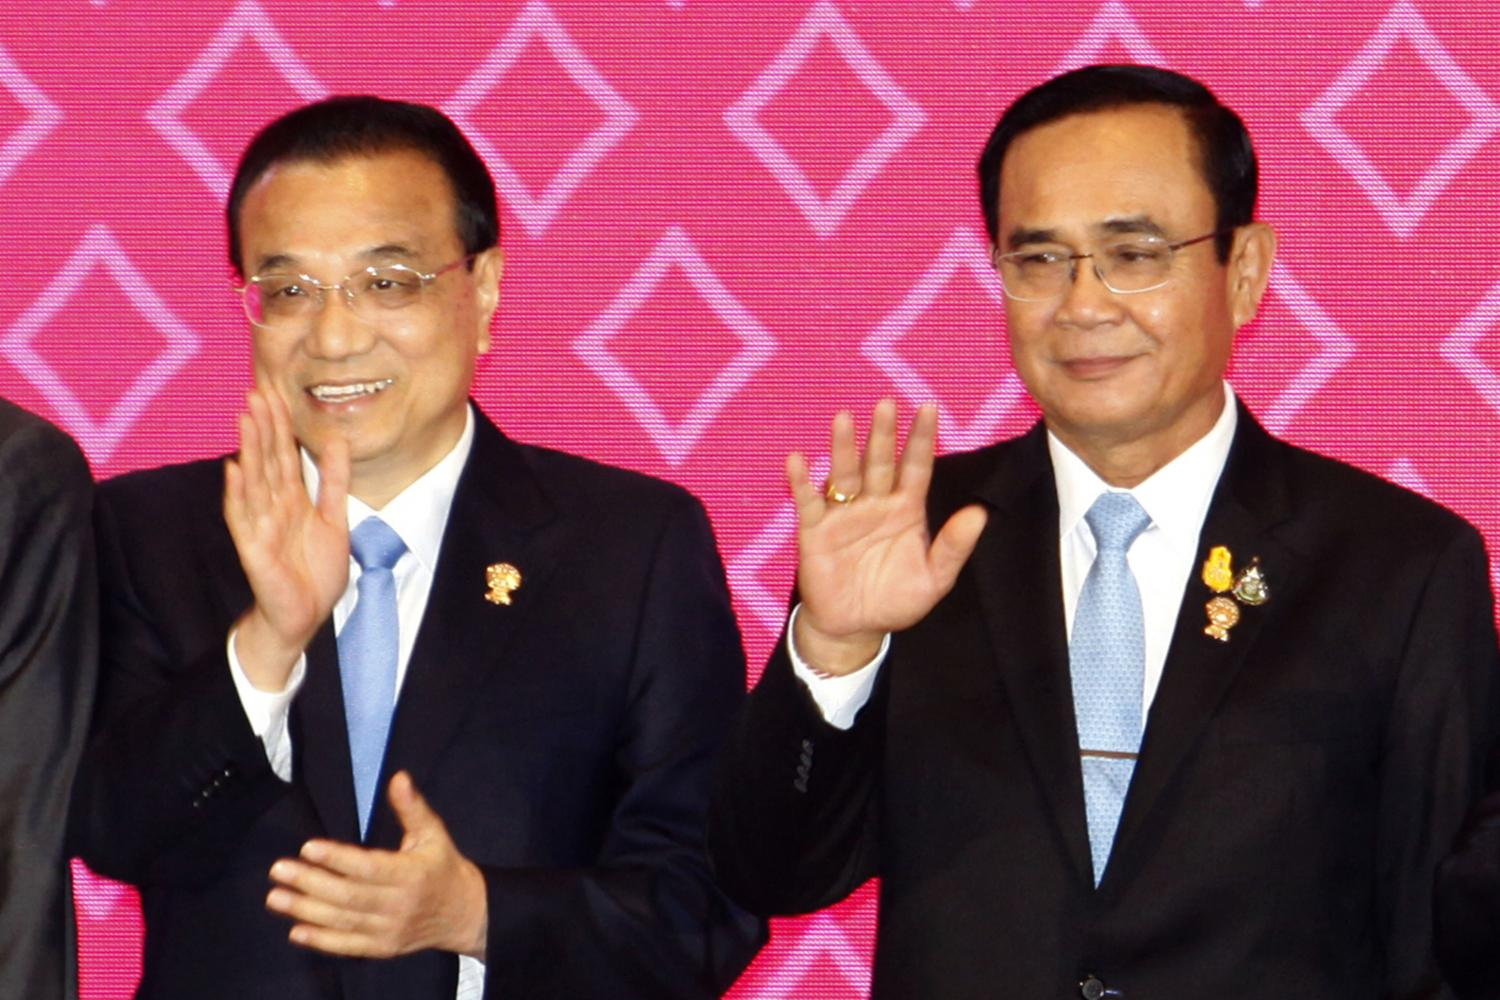 Chinese Premier Li Keqiang (left) and Prime Minister Prayut Chan-o-cha wave during a group photo session at the Asean-China Summit on Sunday. (Photo by Wichan Charoenkiatpakul)